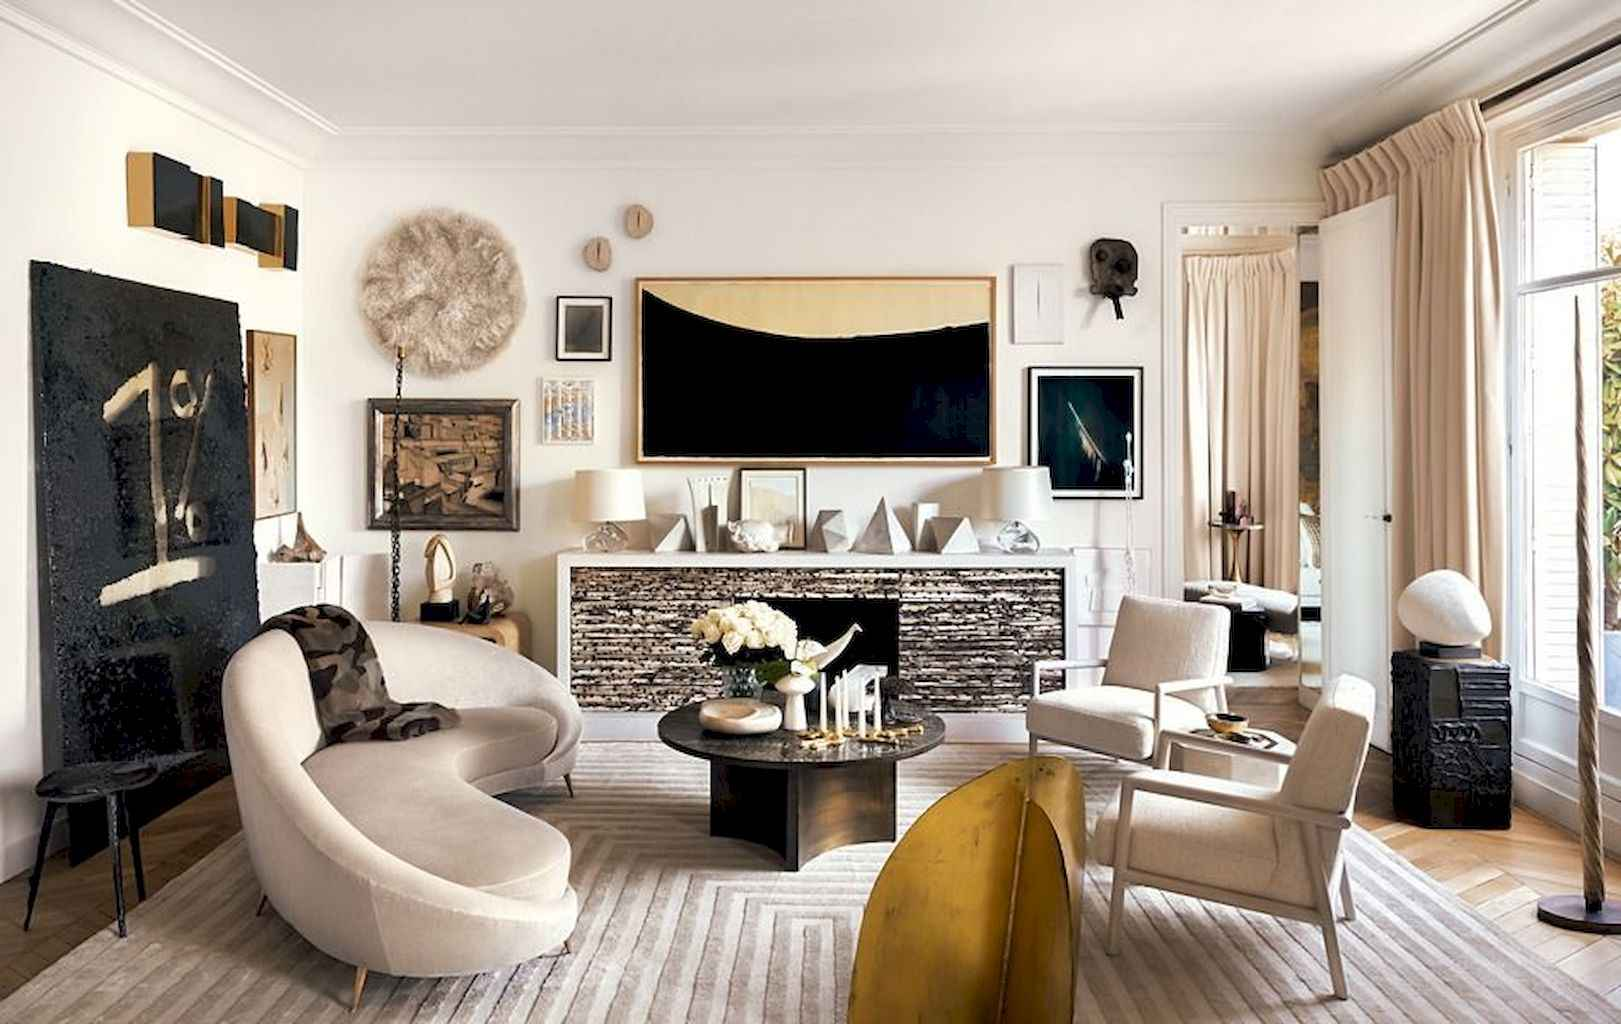 Published December 28 2017 At 1621 1024 In 111 Beautiful Parisian Chic Apartment Decor Ideas